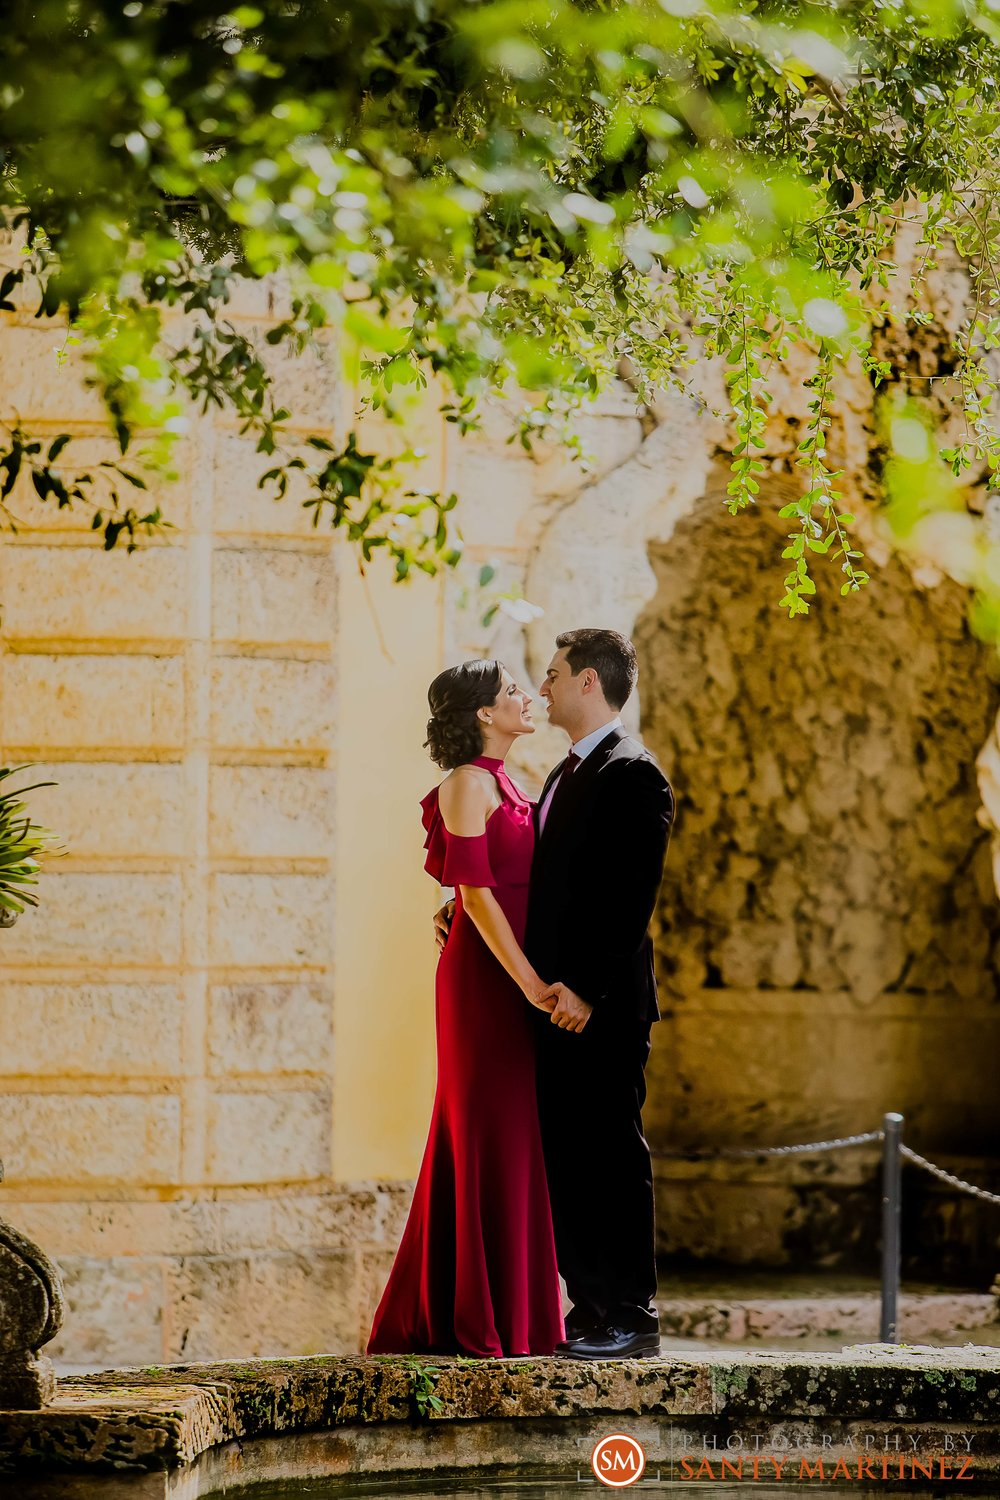 Engagement Session Vizcaya - Photos - Santy Martinez-10.jpg